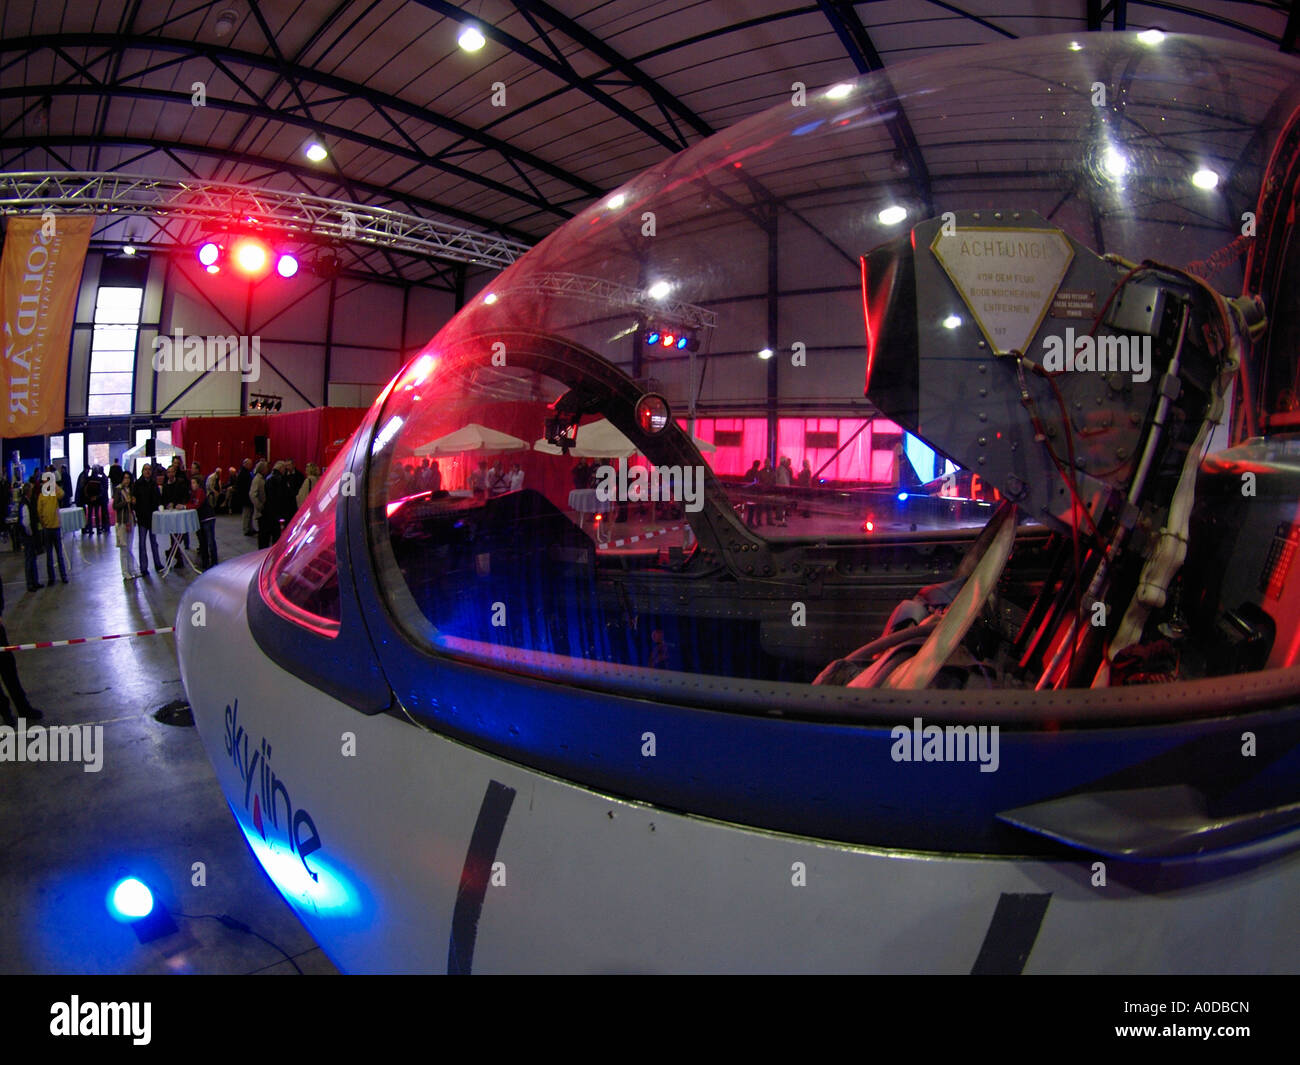 Fisheye image of L39 Albatros fighter jet cockpit aeroplane parked in hangar on Eindhoven Airport the Netherlands - Stock Image